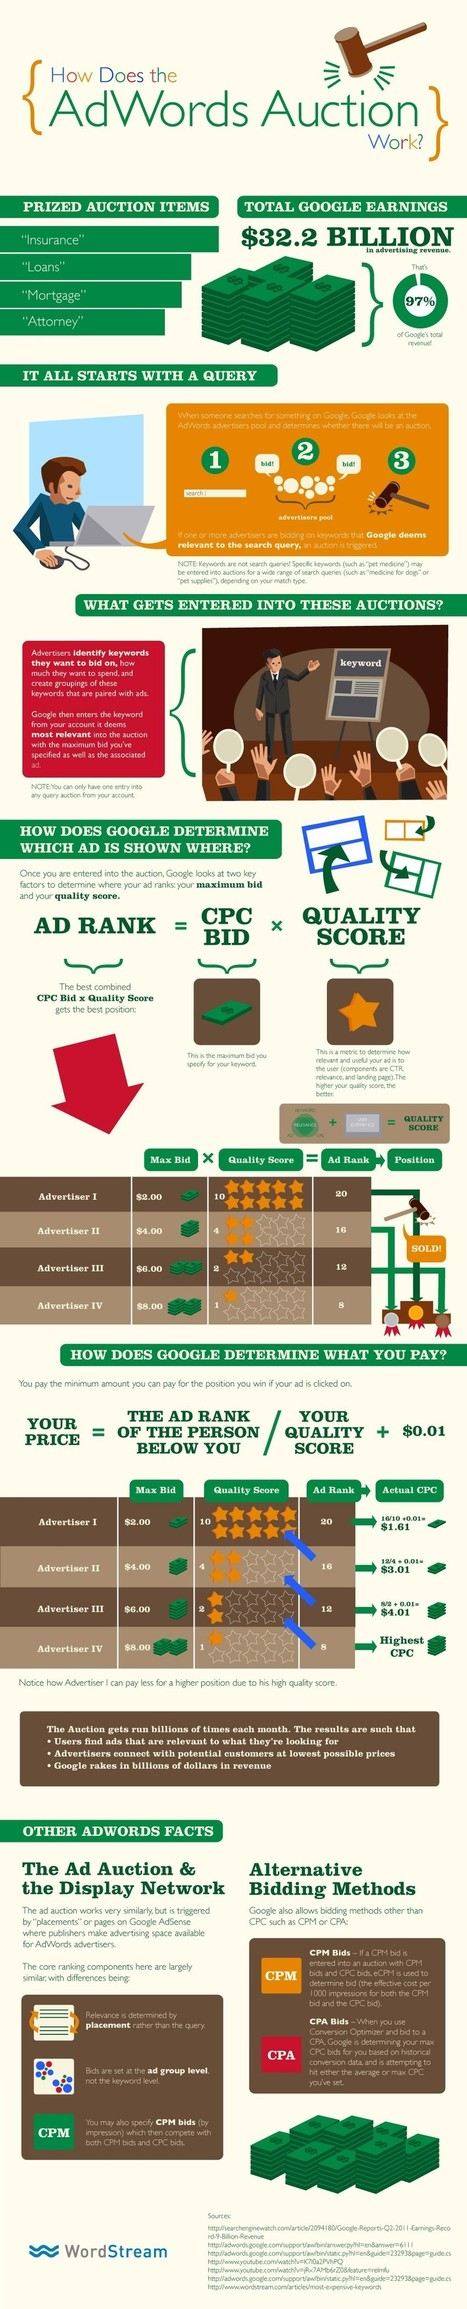 Google Billion Dollar Adword Auction Secrets Revealed | Digital & Social Media Marketing | Scoop.it